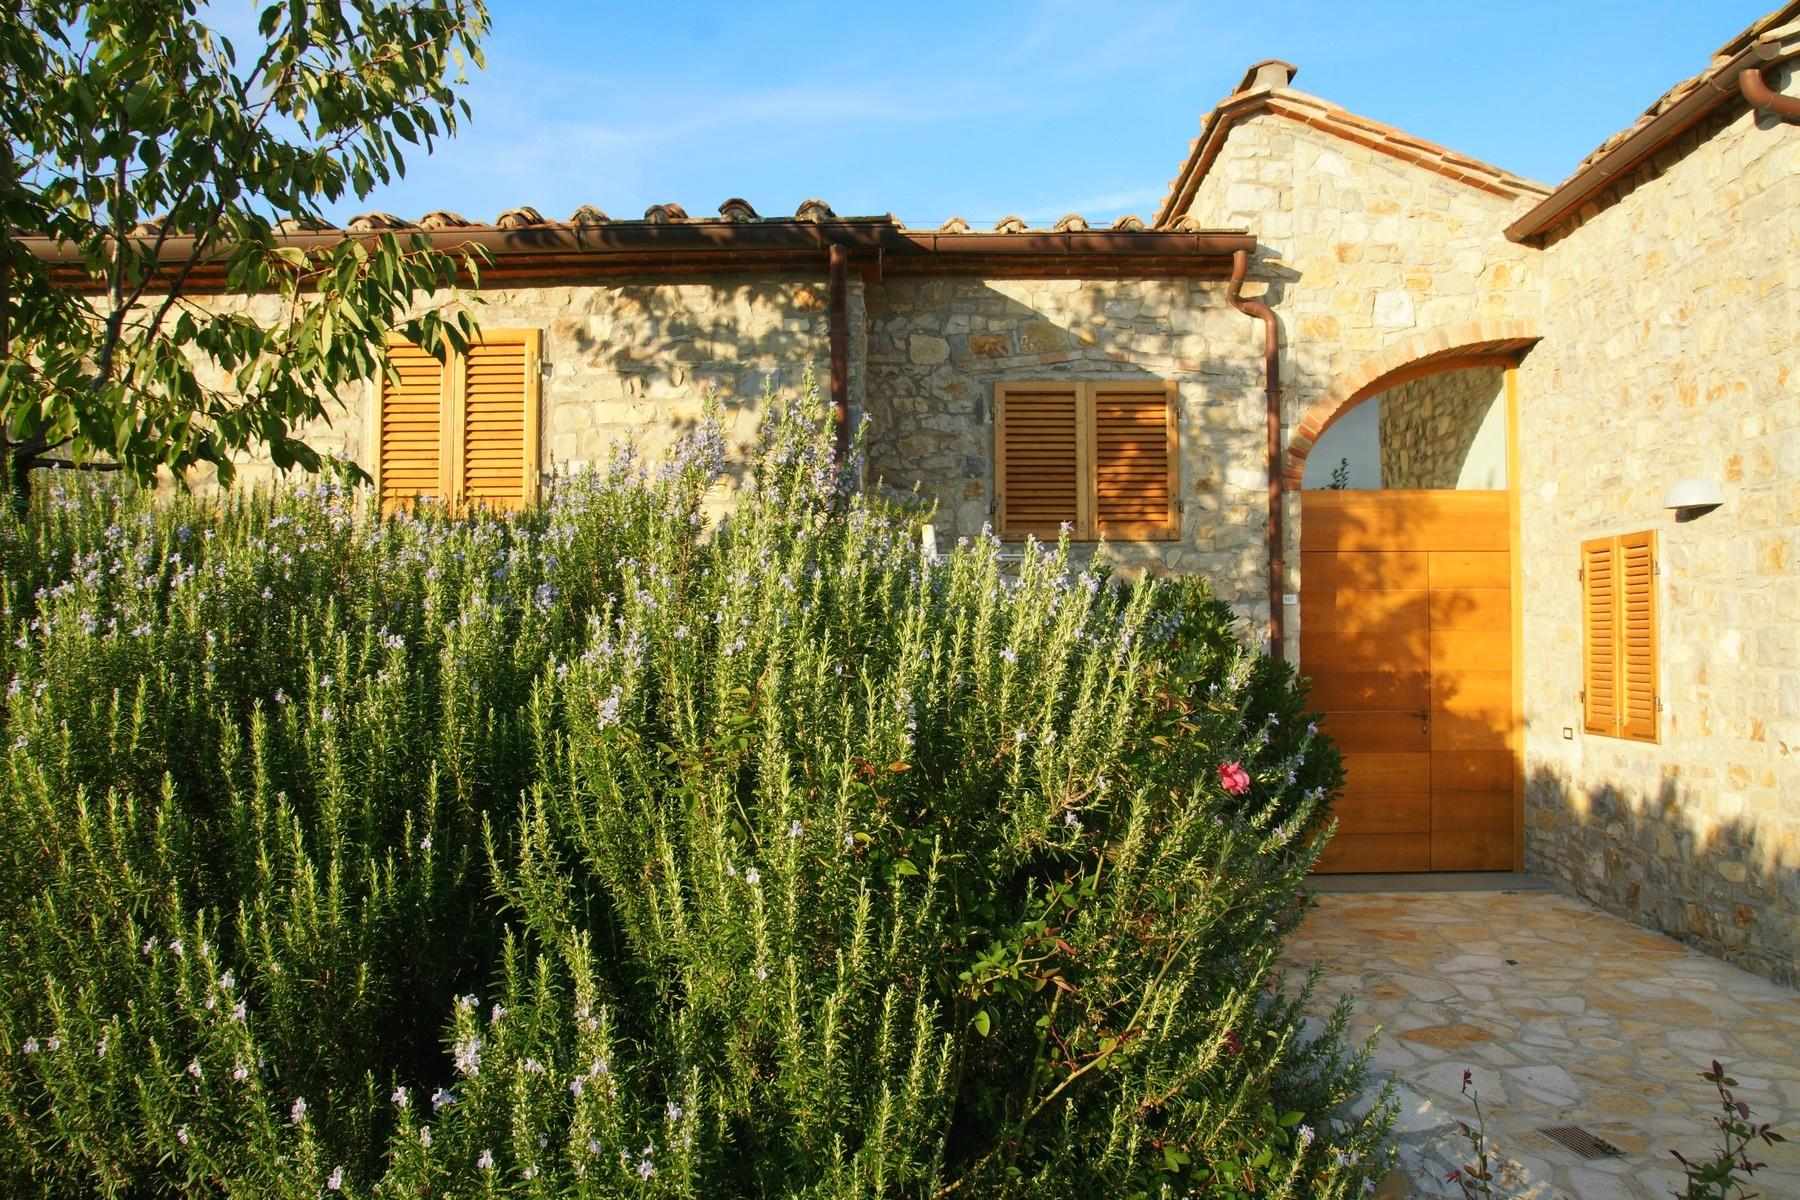 Residential property and boutique winery in the heart of Chianti - 12